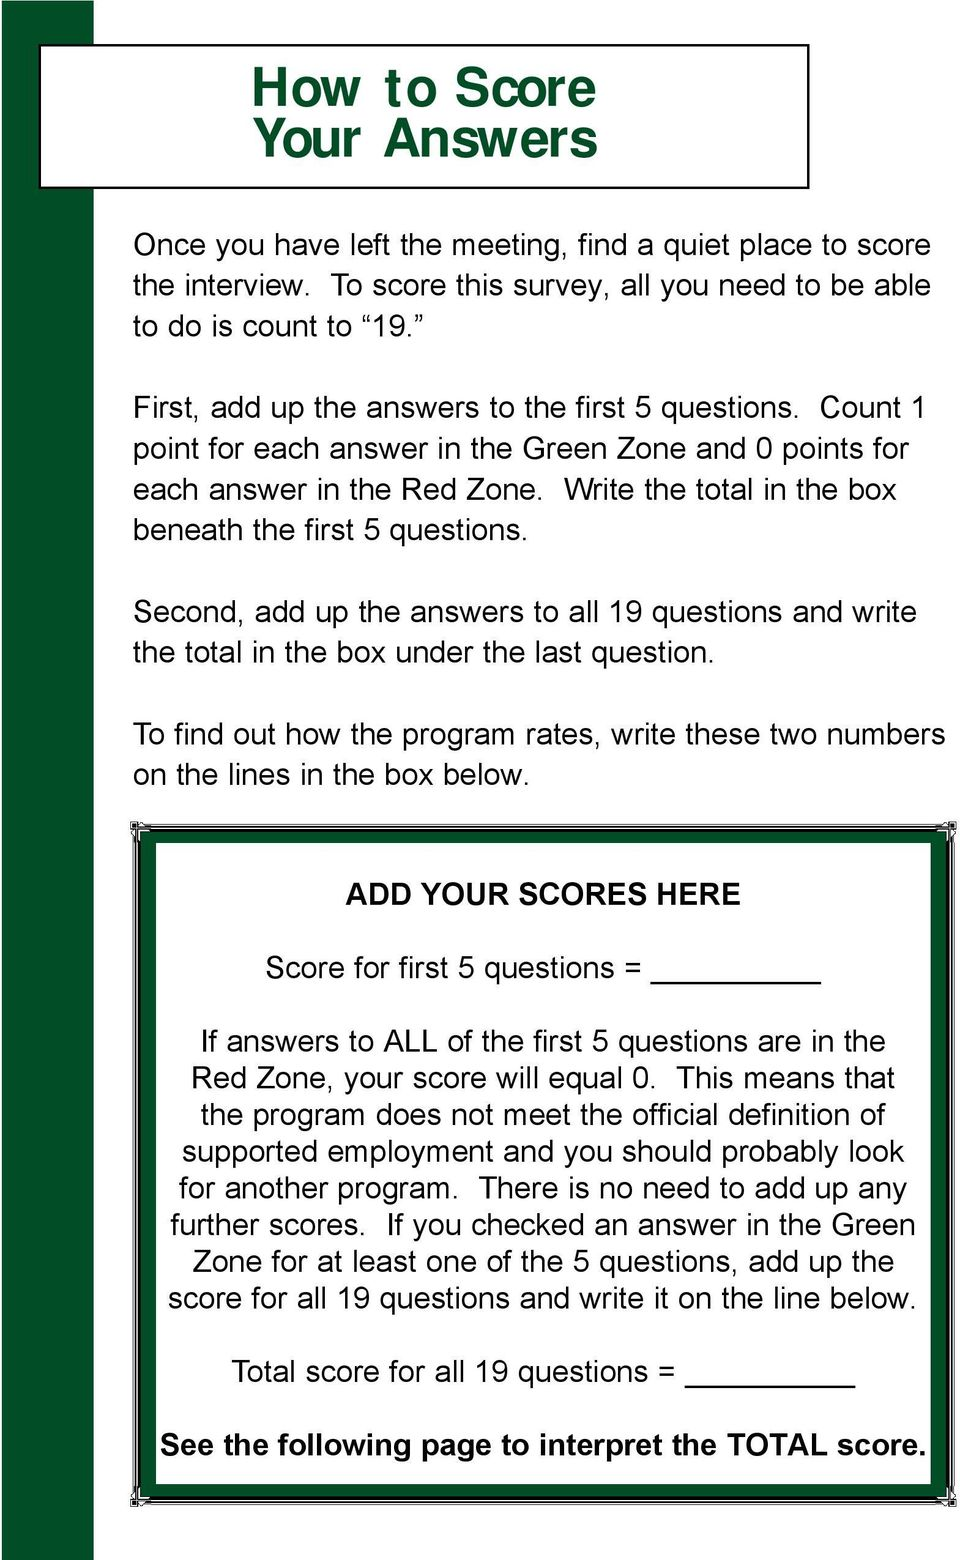 Write the total in the box beneath the first 5 questions. Second, add up the answers to all 19 questions and write the total in the box under the last question.